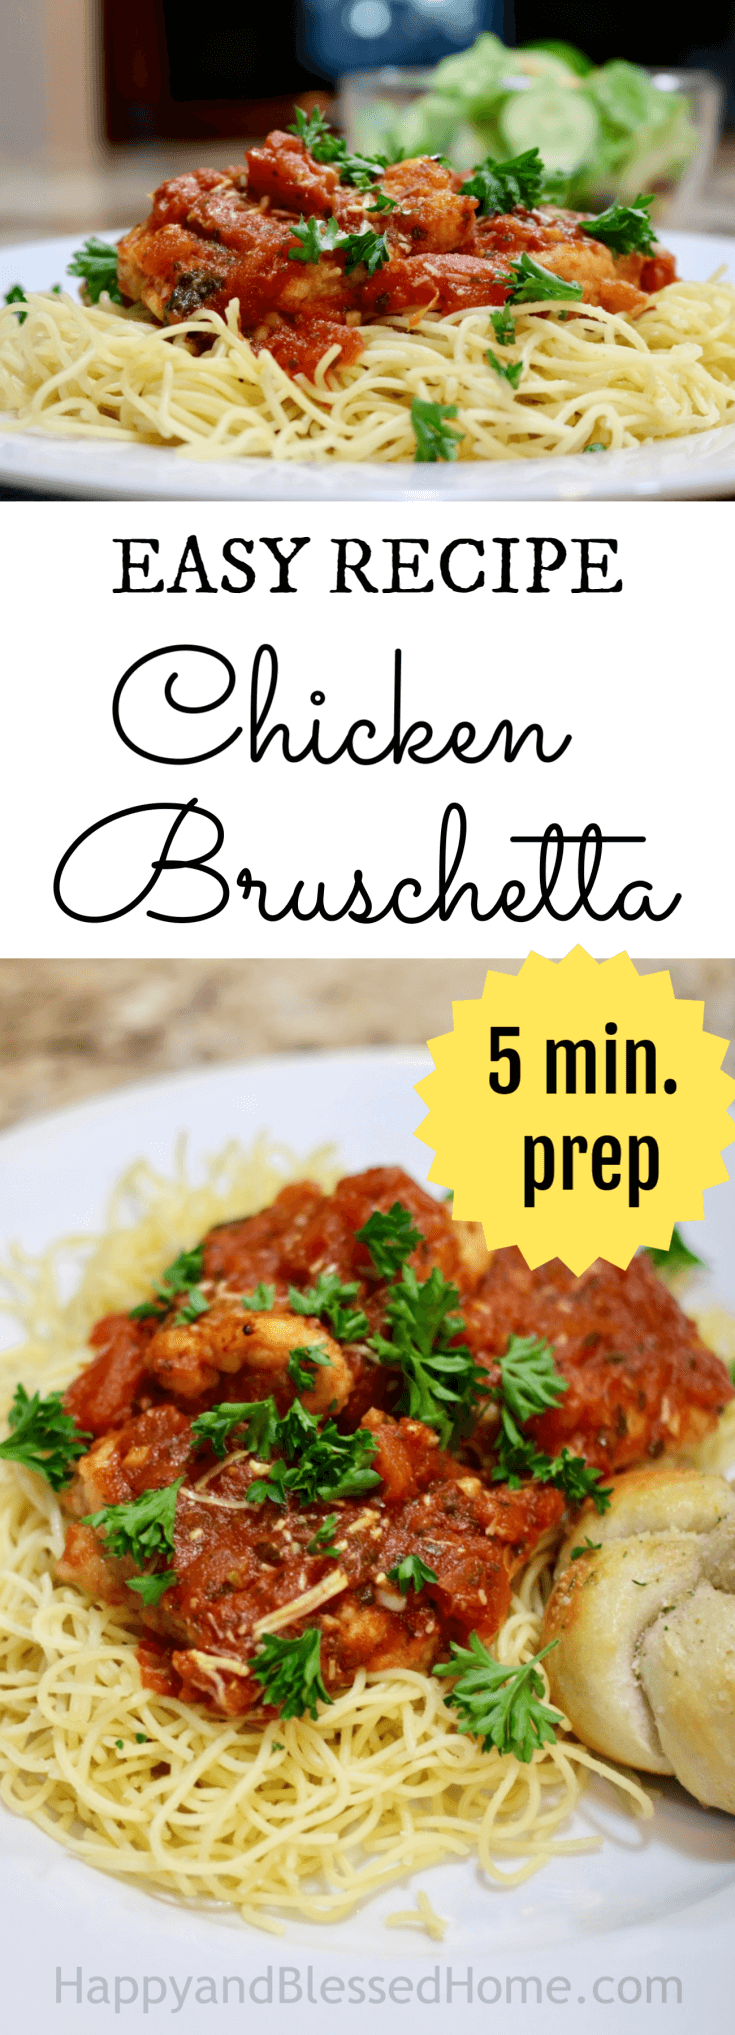 Easiest Chicken Bruschetta Recipe ever - only 5 minutes to prepare - serve with Garlic Knots recipe and side salad for an almost homemade family meal